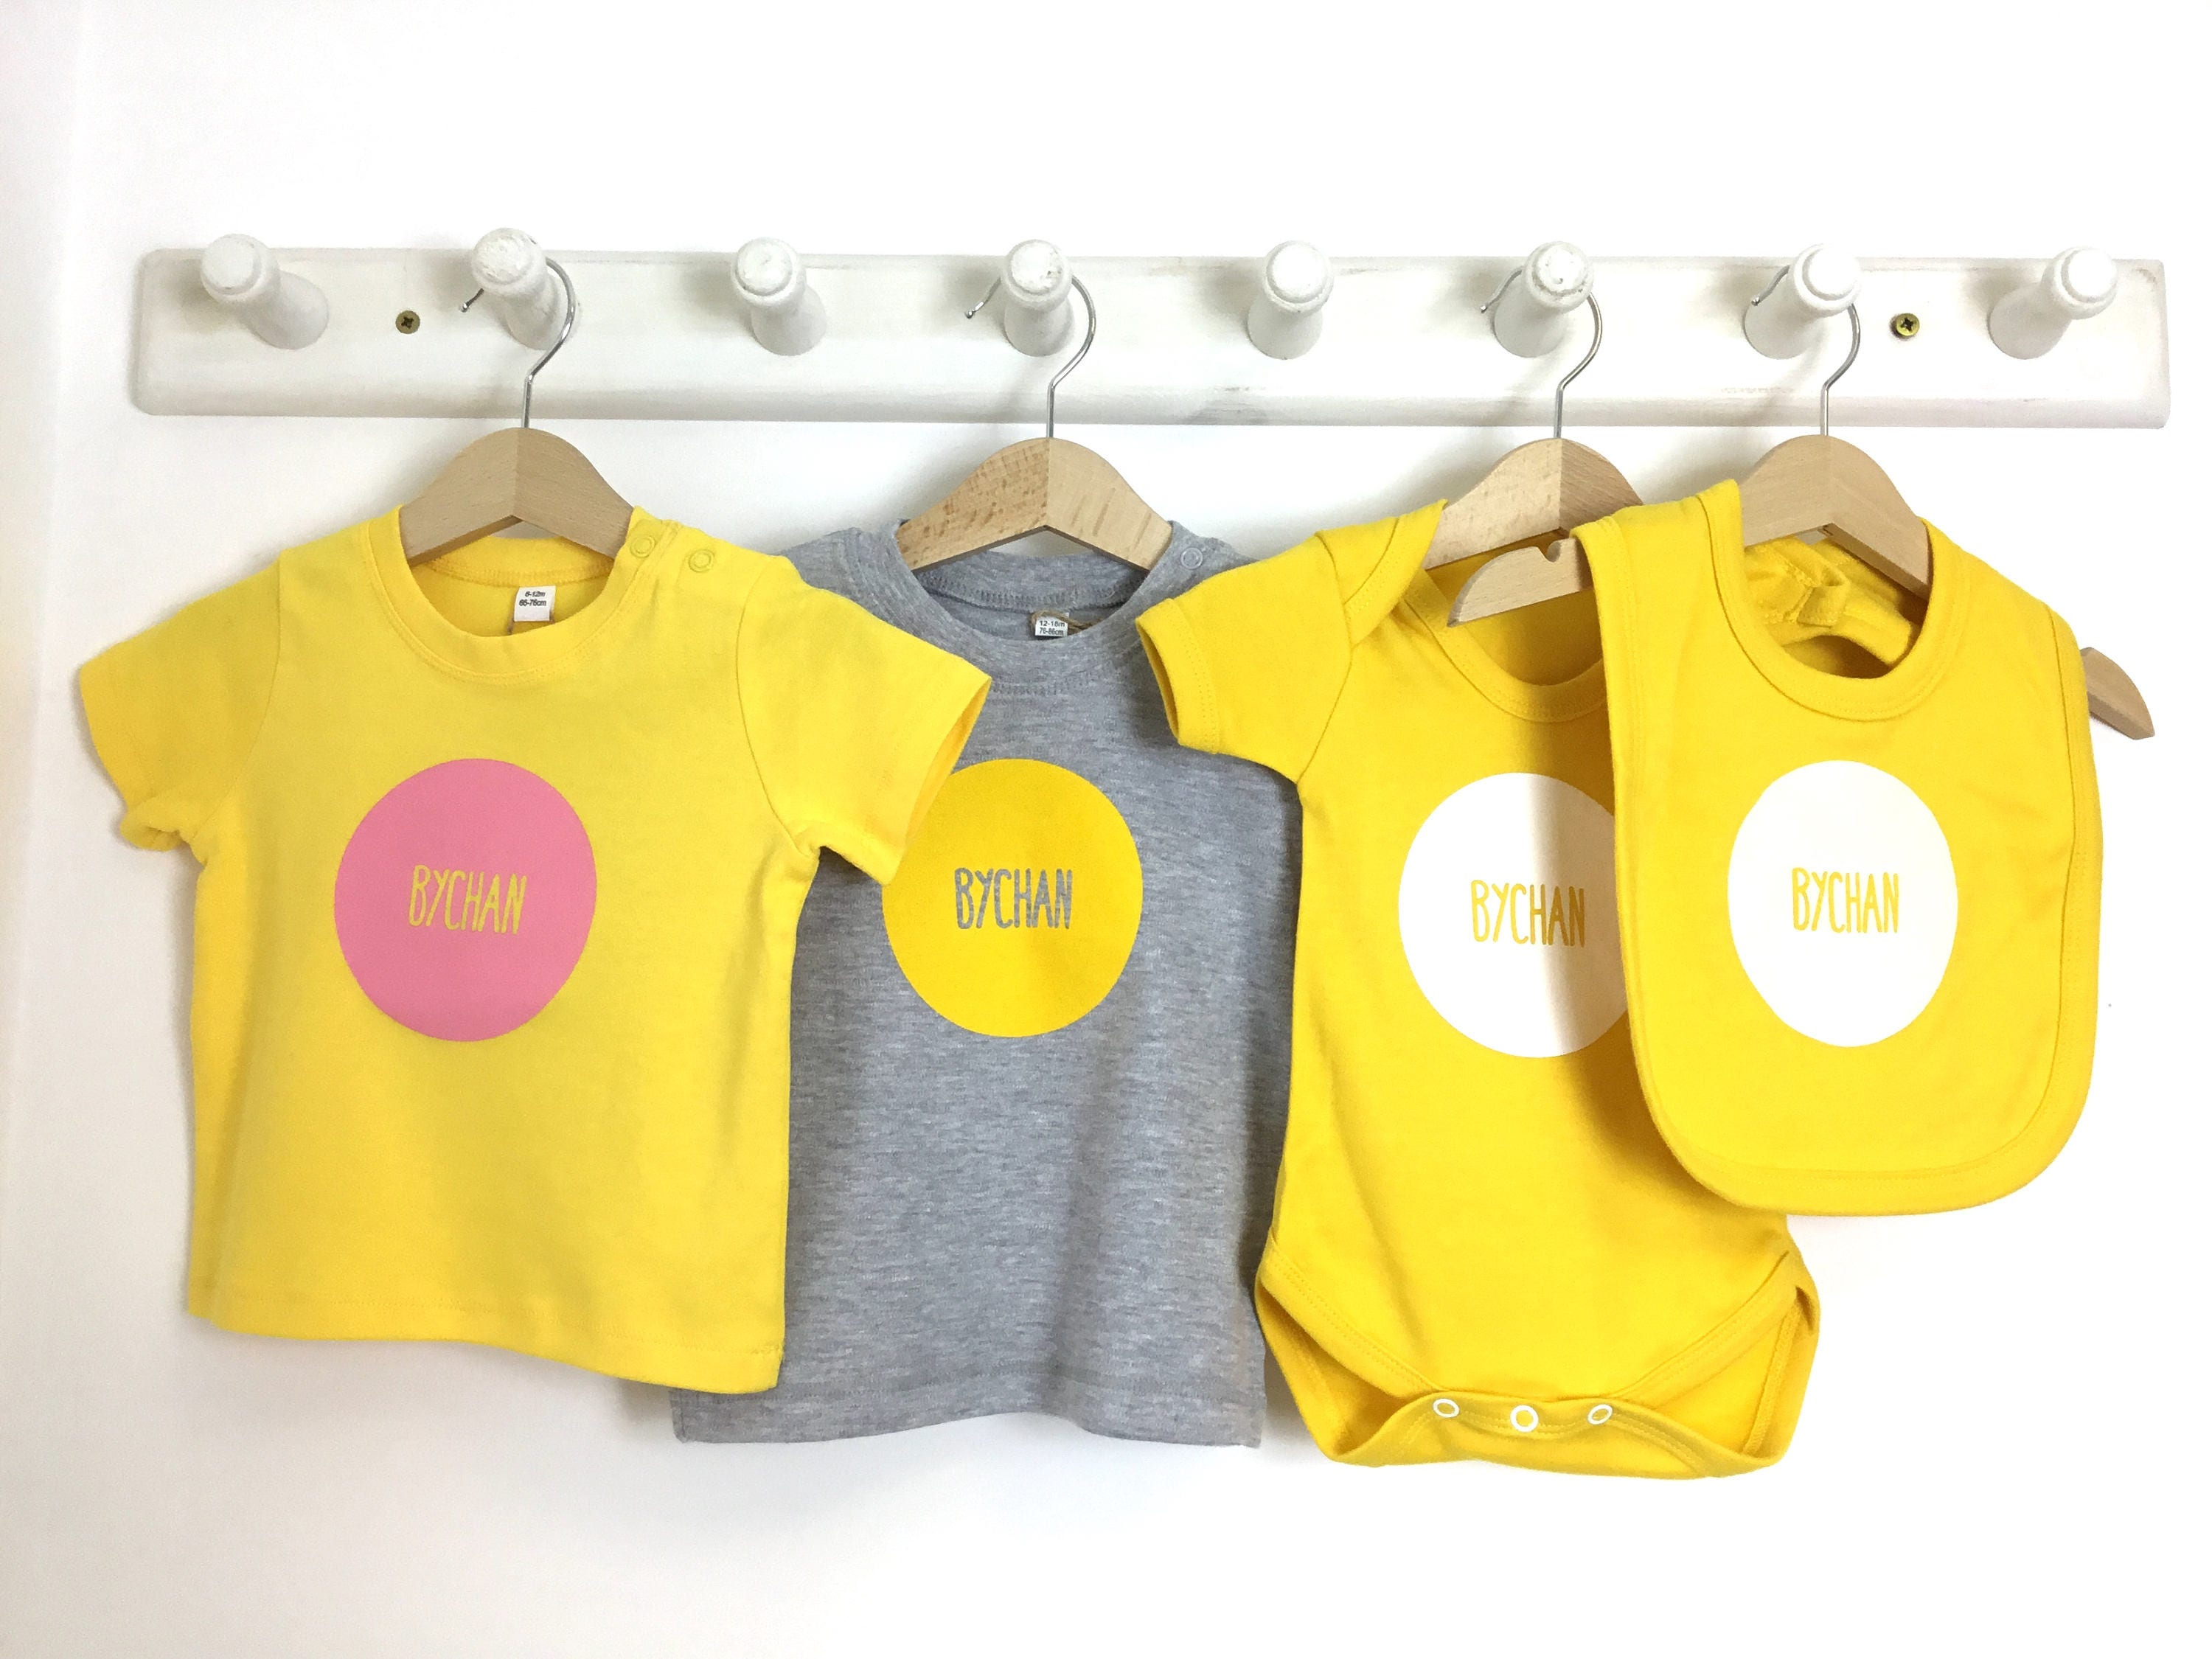 SALE Welsh Text Bychan Little Baby Clothes Light Grey T shirt Yellow